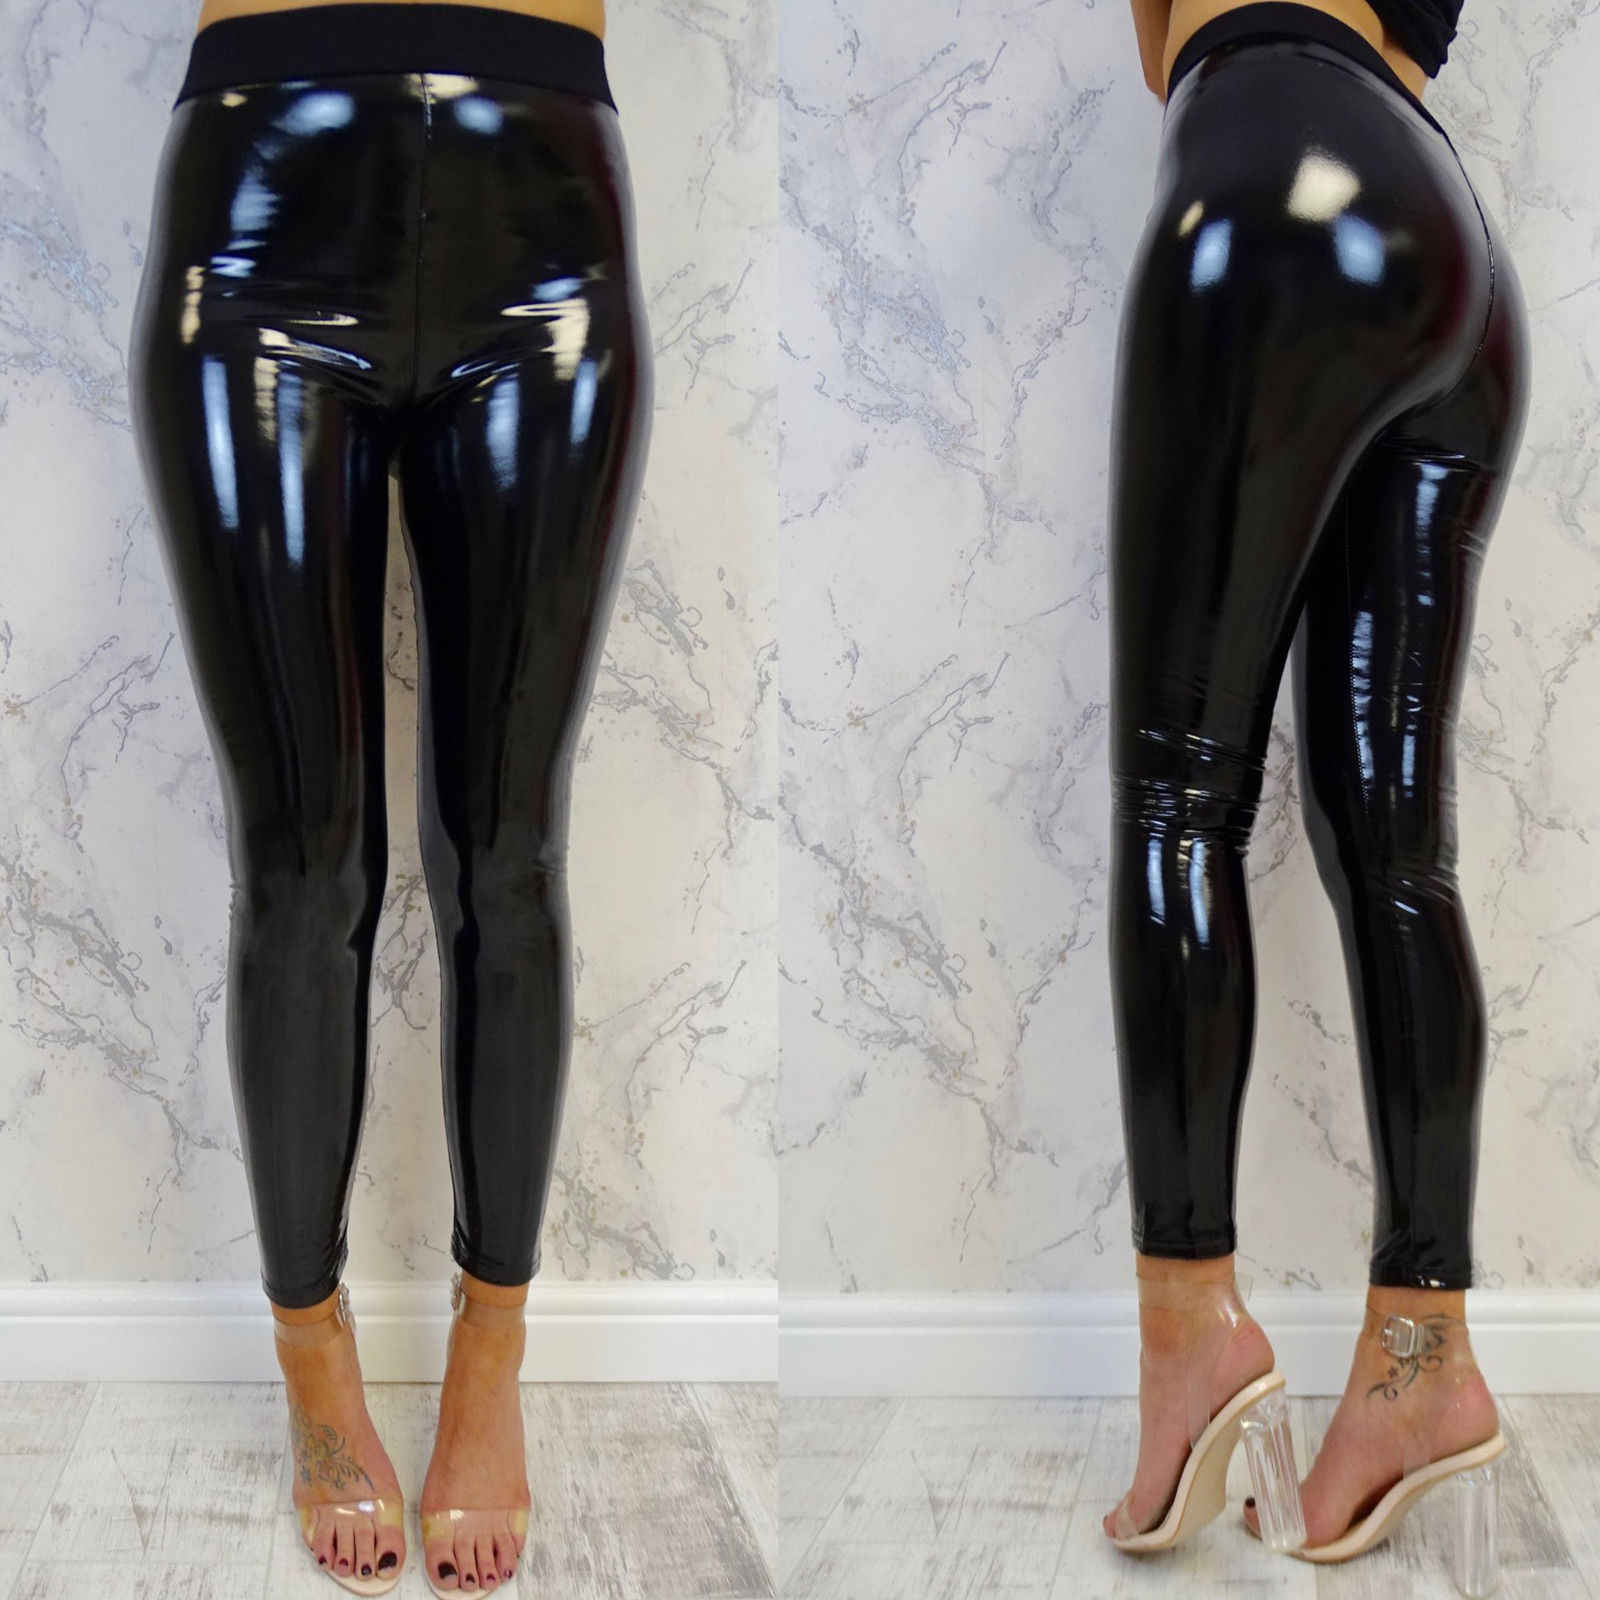 55ac8036c3a26 Detail Feedback Questions about Fashion Womens Ladies Sexy Black Pants High  Waist Slim Soft Strethcy Shiny PU Leather Wet Wet Look Faux Leather Leggings  ...